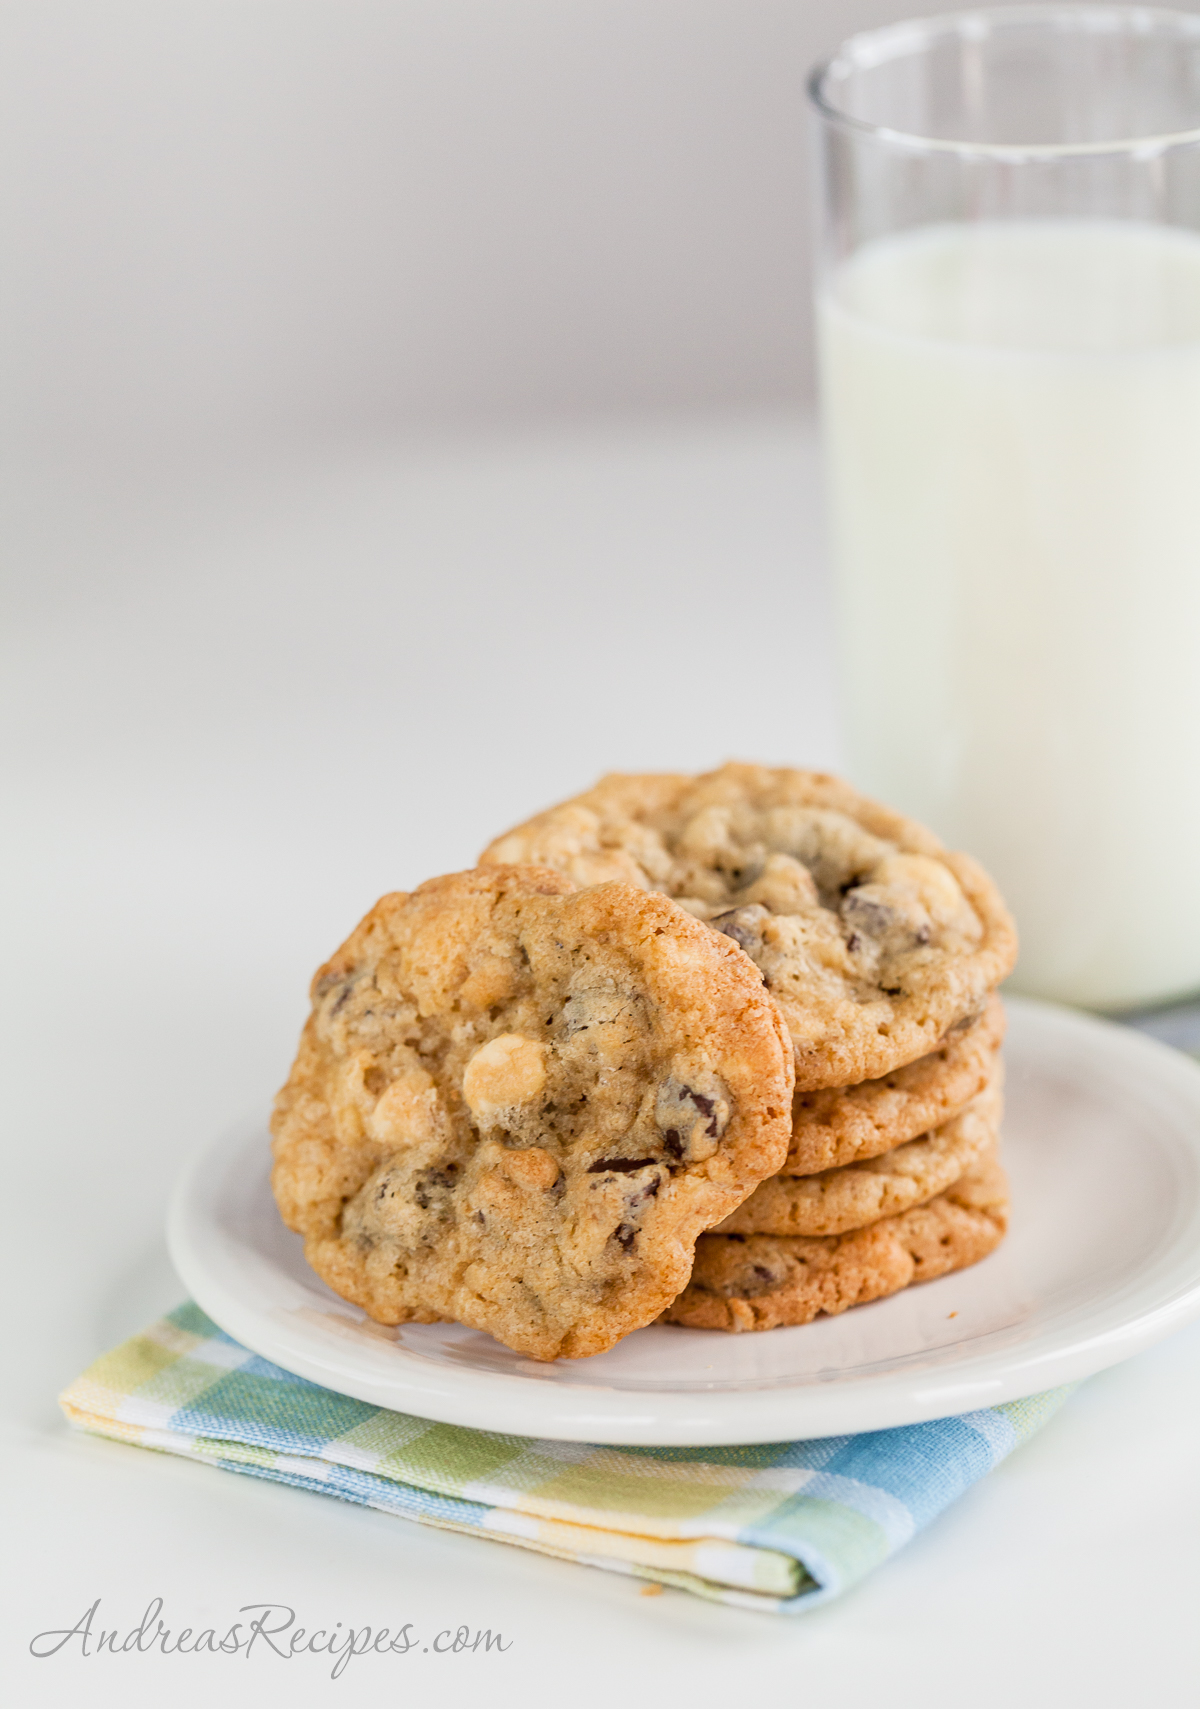 Chocolate chip cookies from Cookies for Kids Cancer - Andrea Meyers